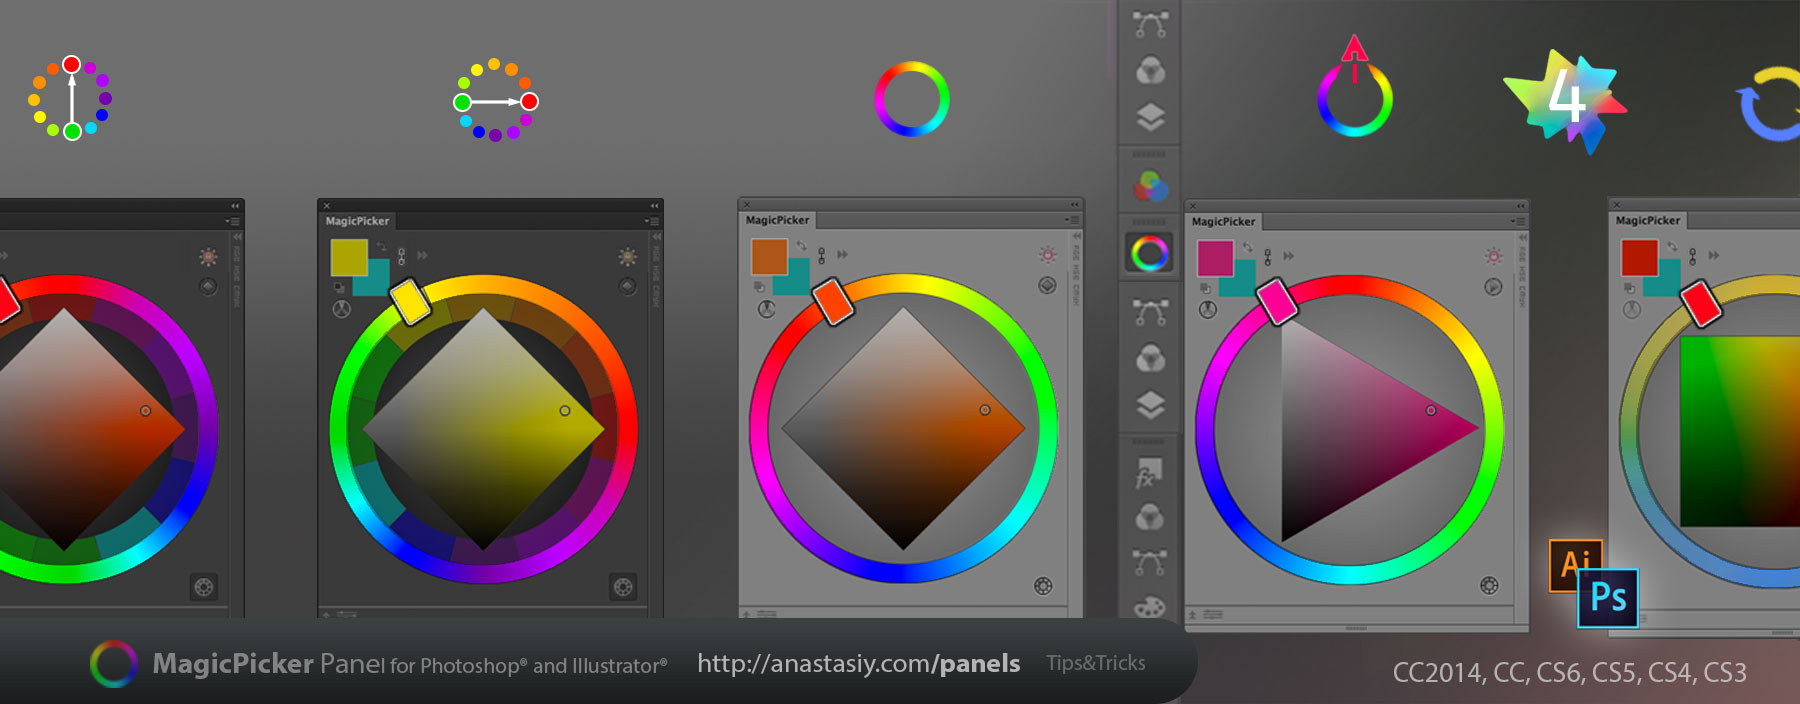 Rotate MagicPicker color wheel